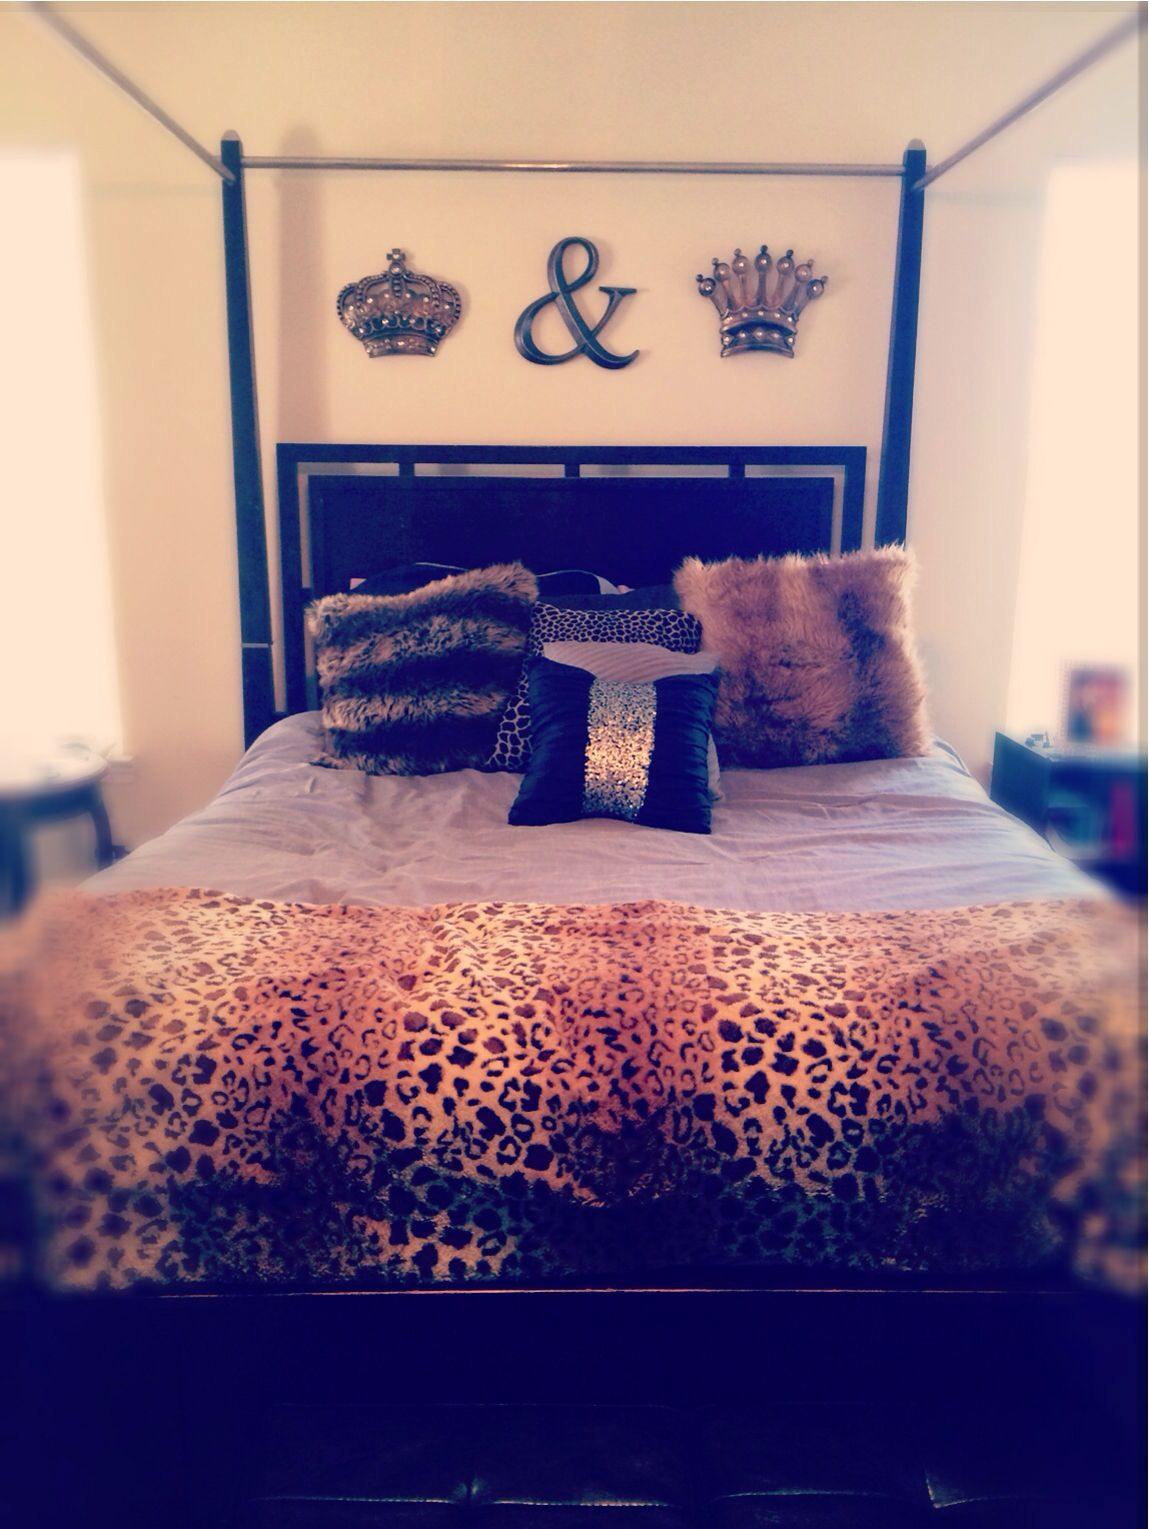 King And Queen Bedroom Decor Over Our Bed Now To Add Paint But I Prepossessing King And Queen Bedroom Decor Review